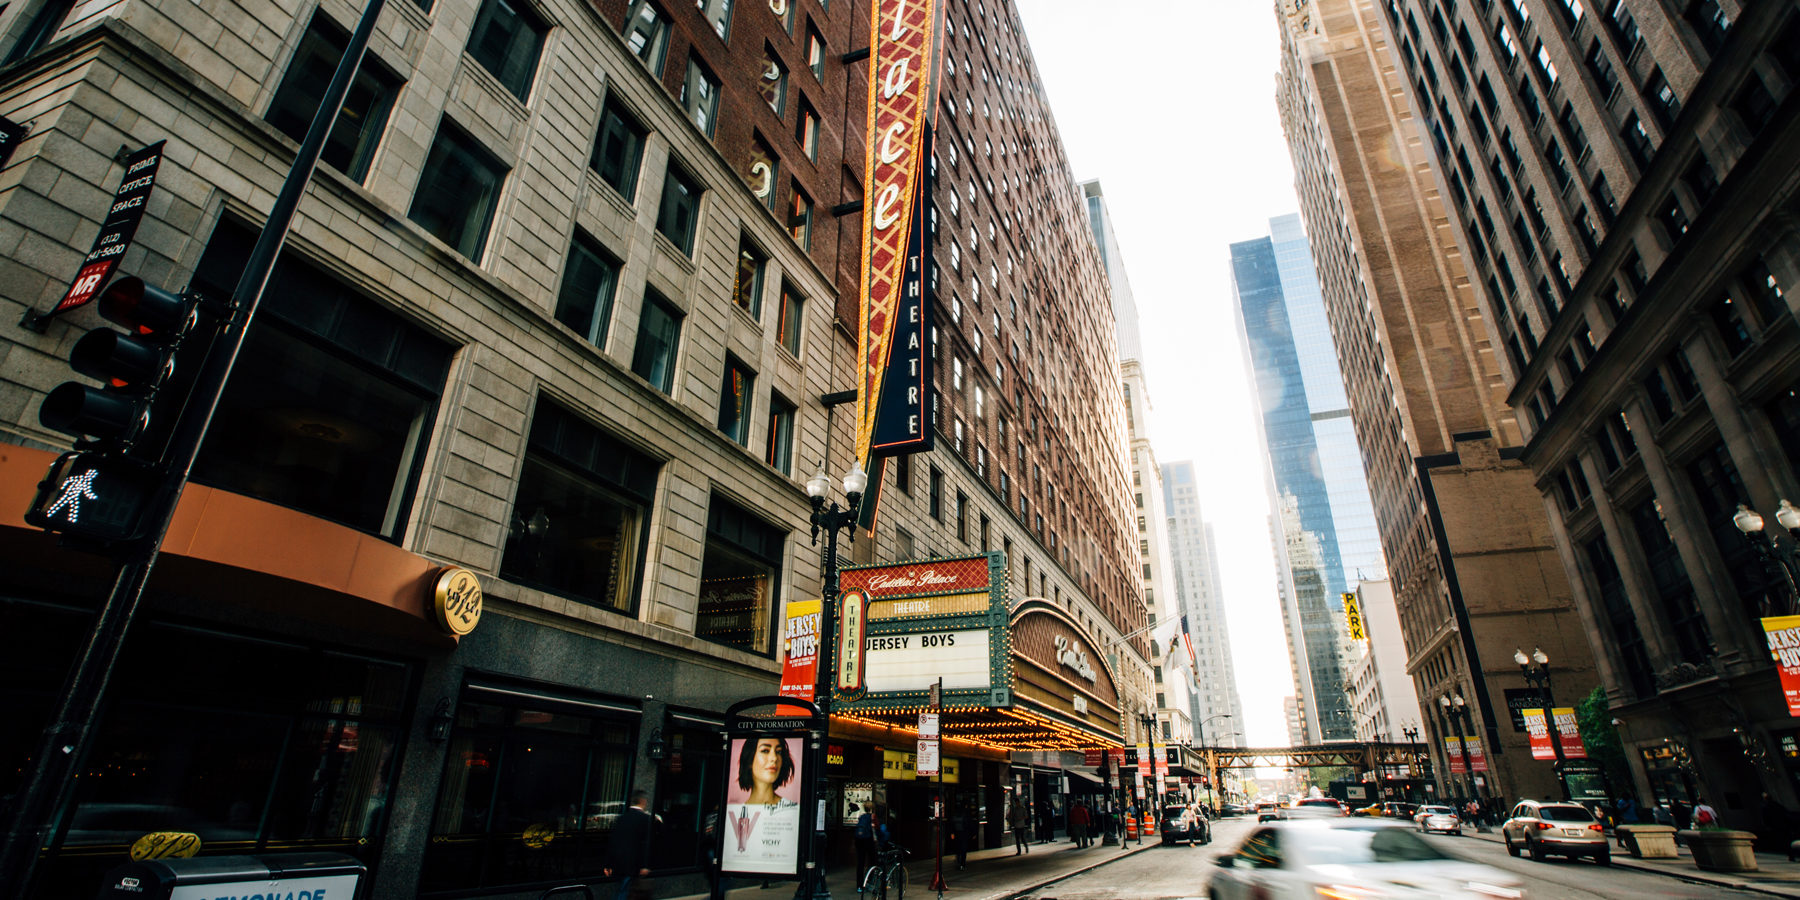 Theatres in Chicago